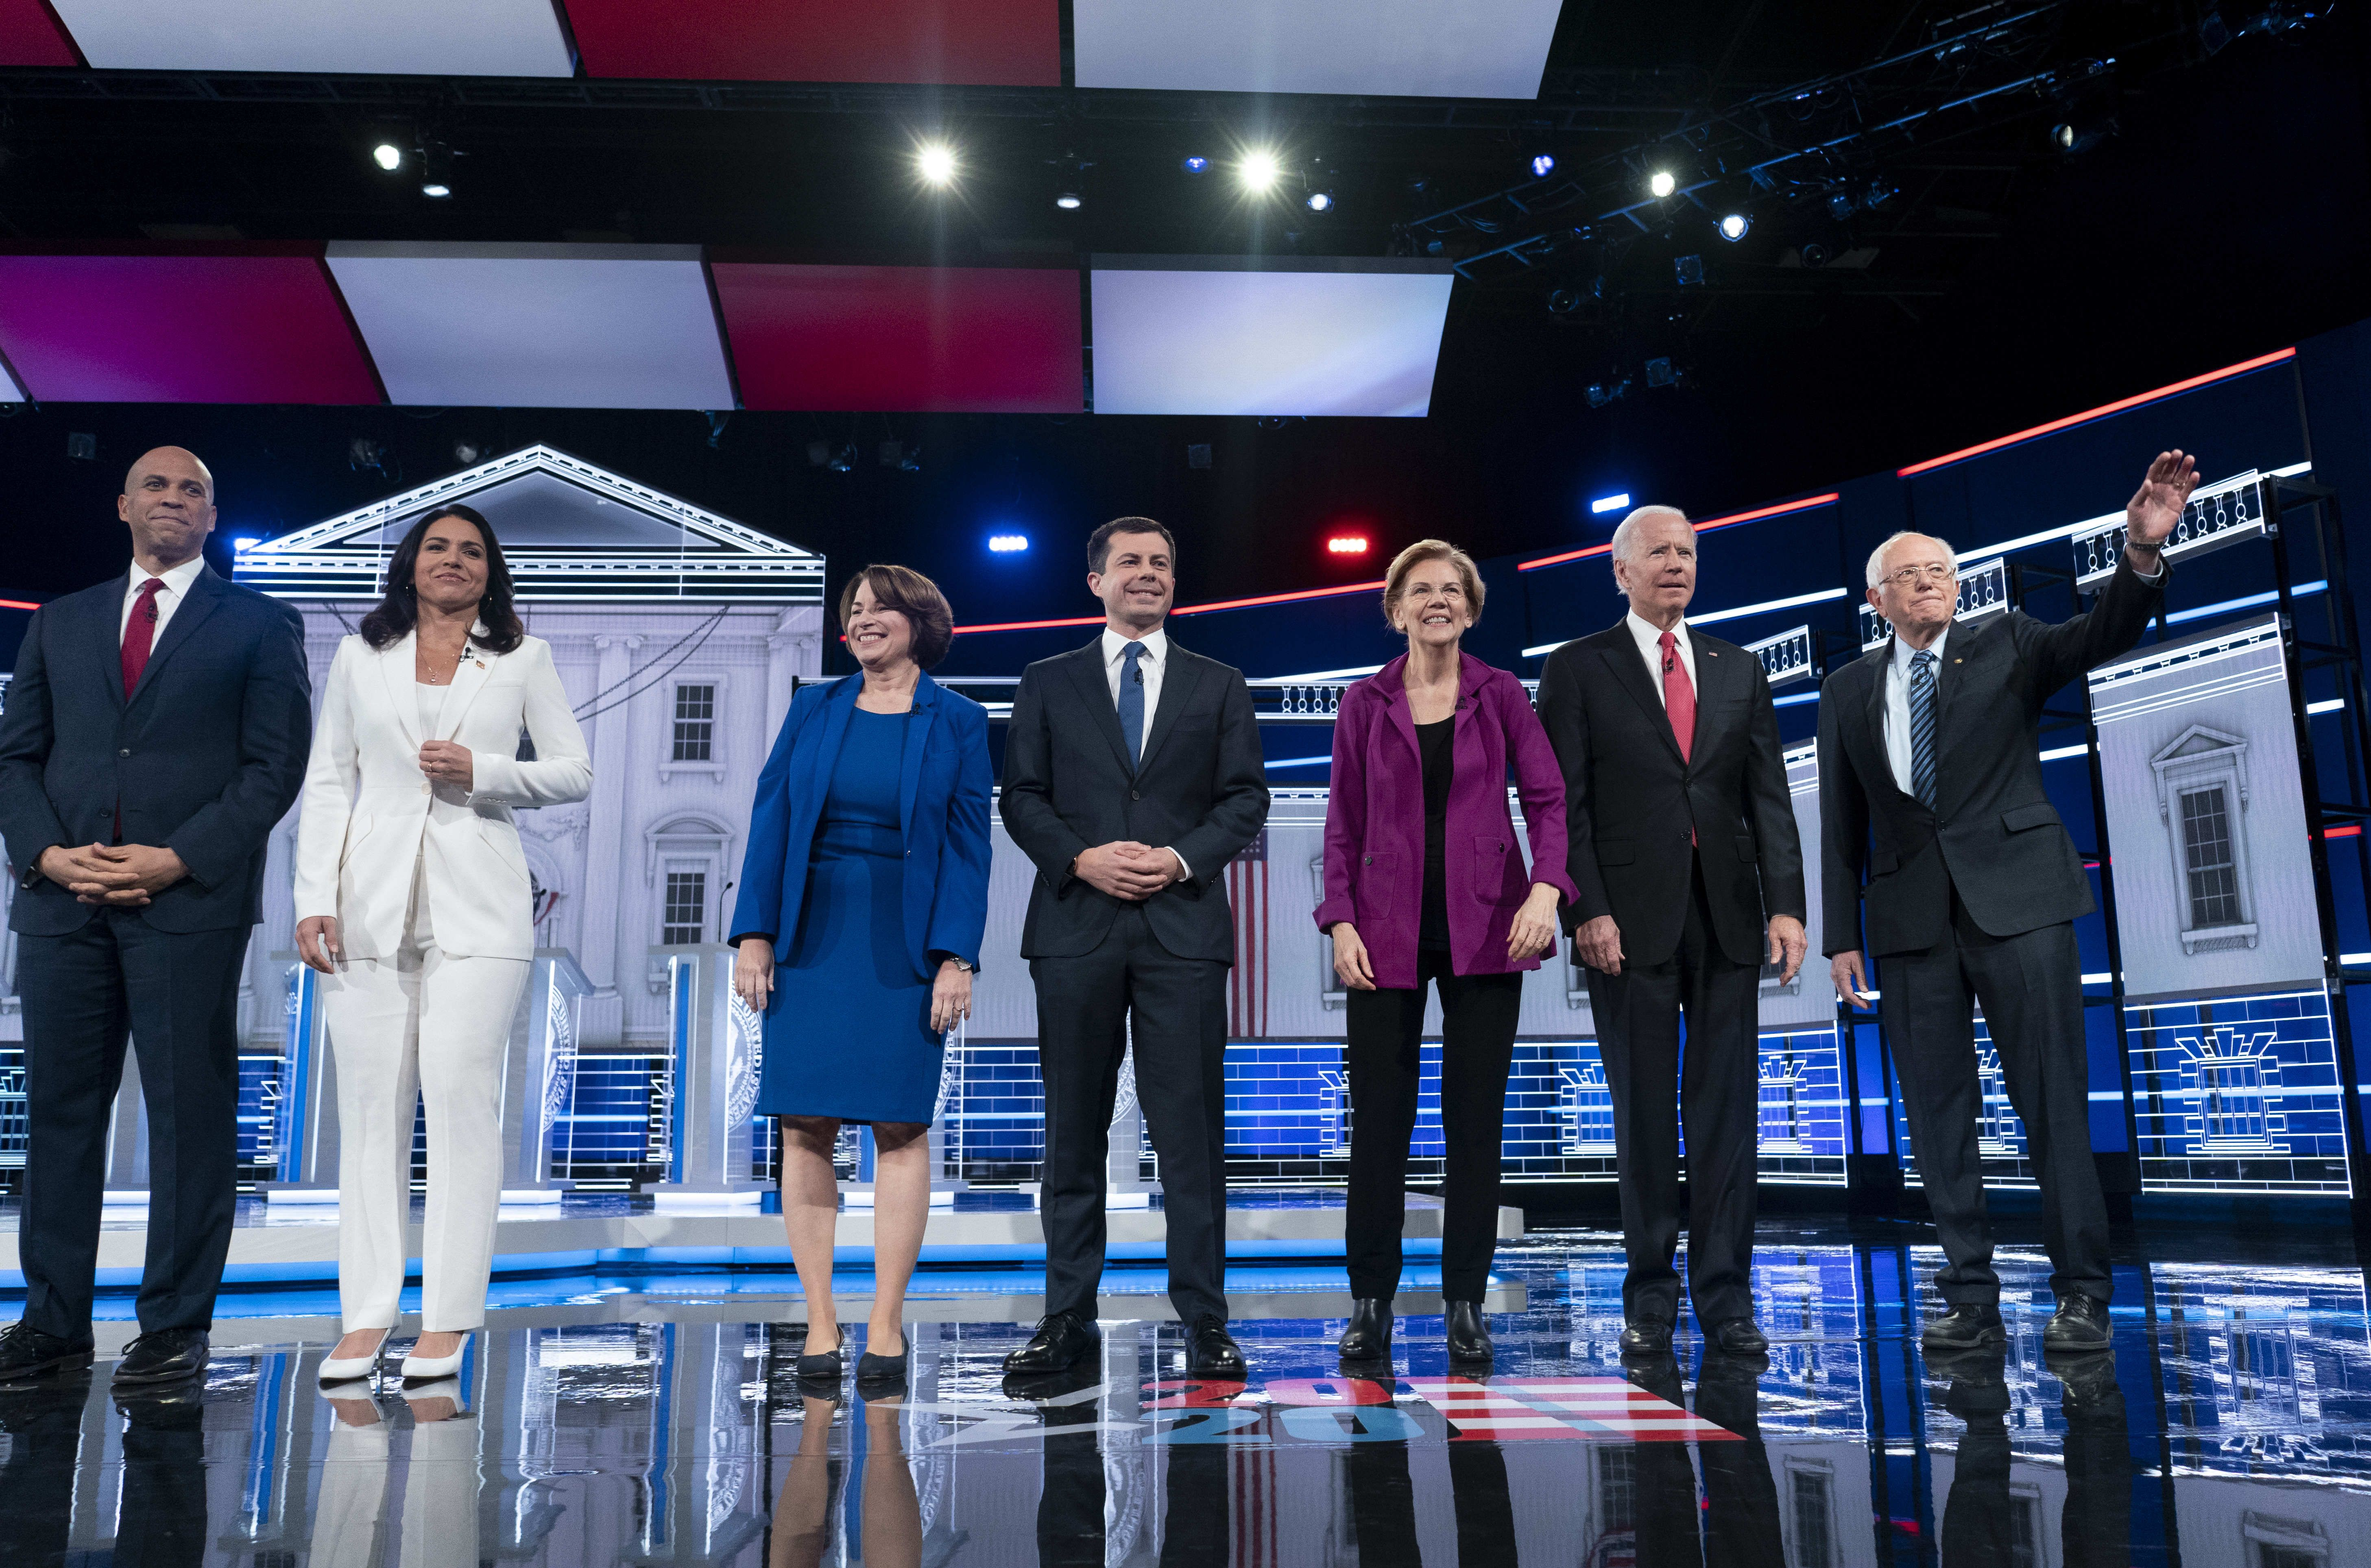 The Trump Impeachment Hearings Had a Gravitational Pull on the Democratic Debate Wednesday